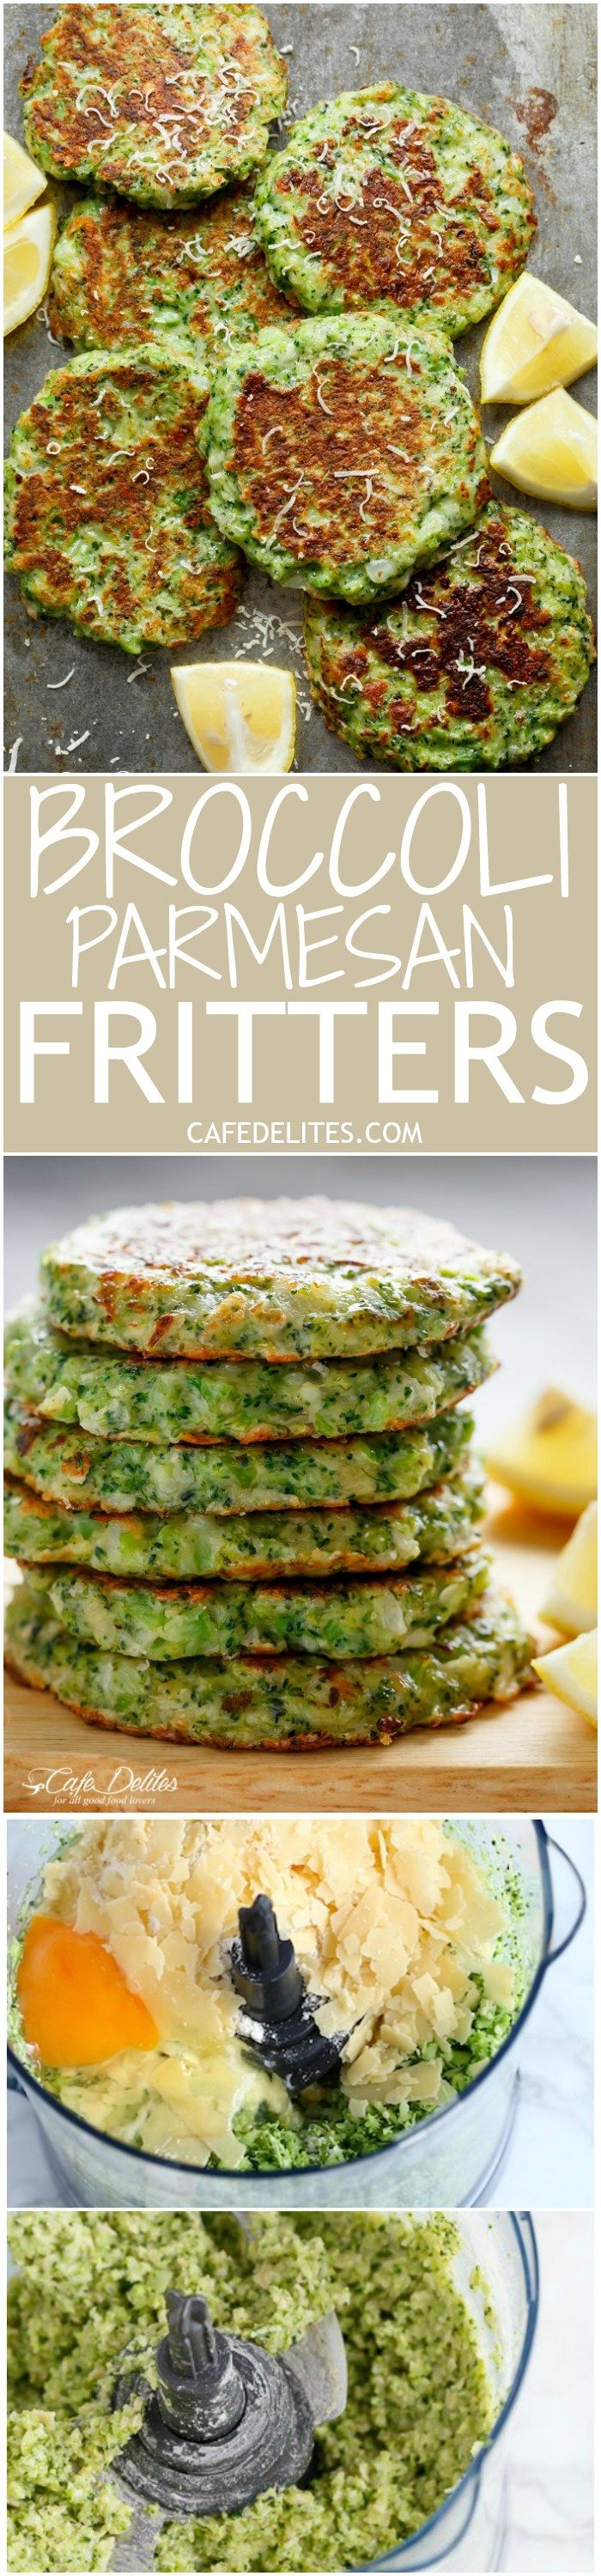 Crispy Broccoli Parmesan Fritters -- baked instead of fried